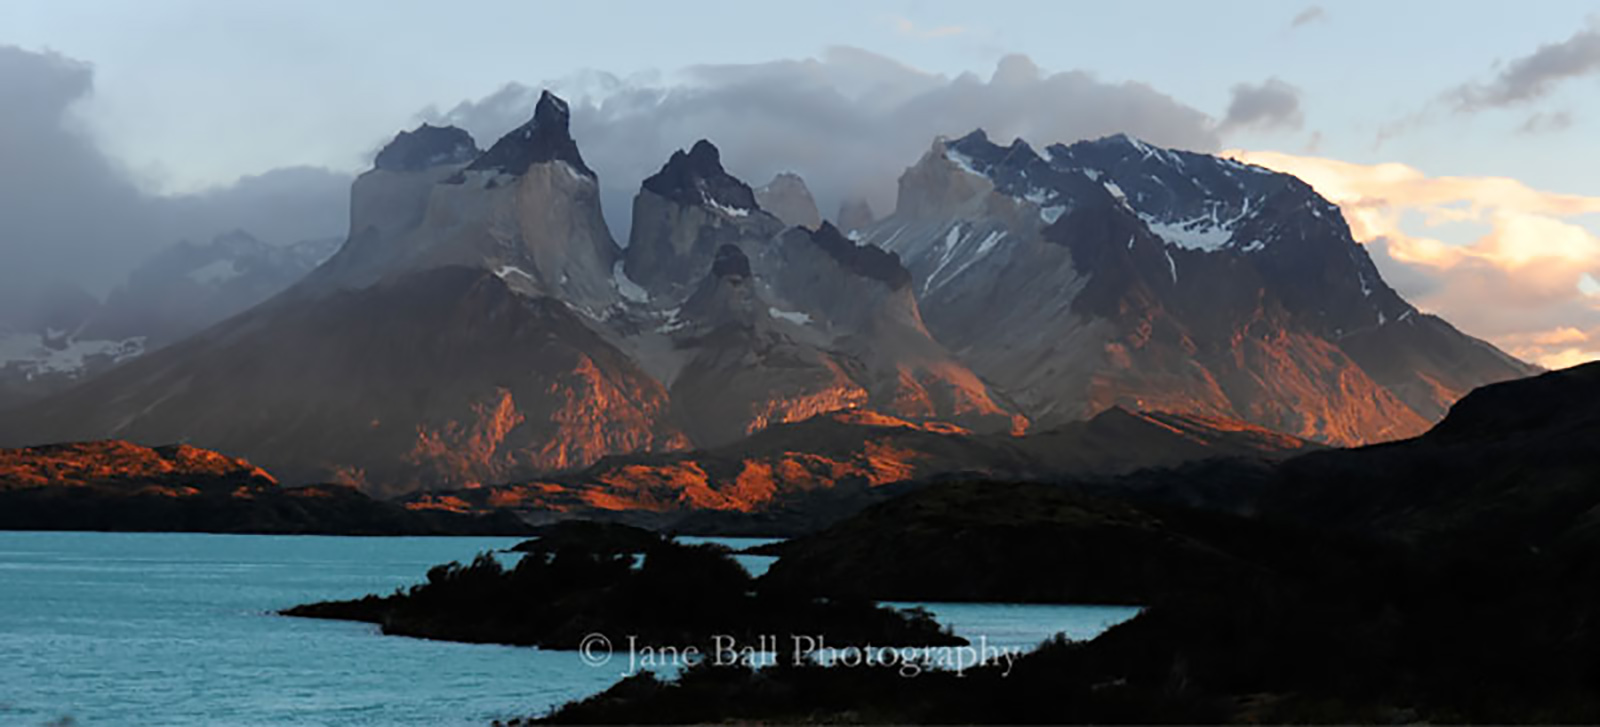 The Horns at Sunset, Patagonia